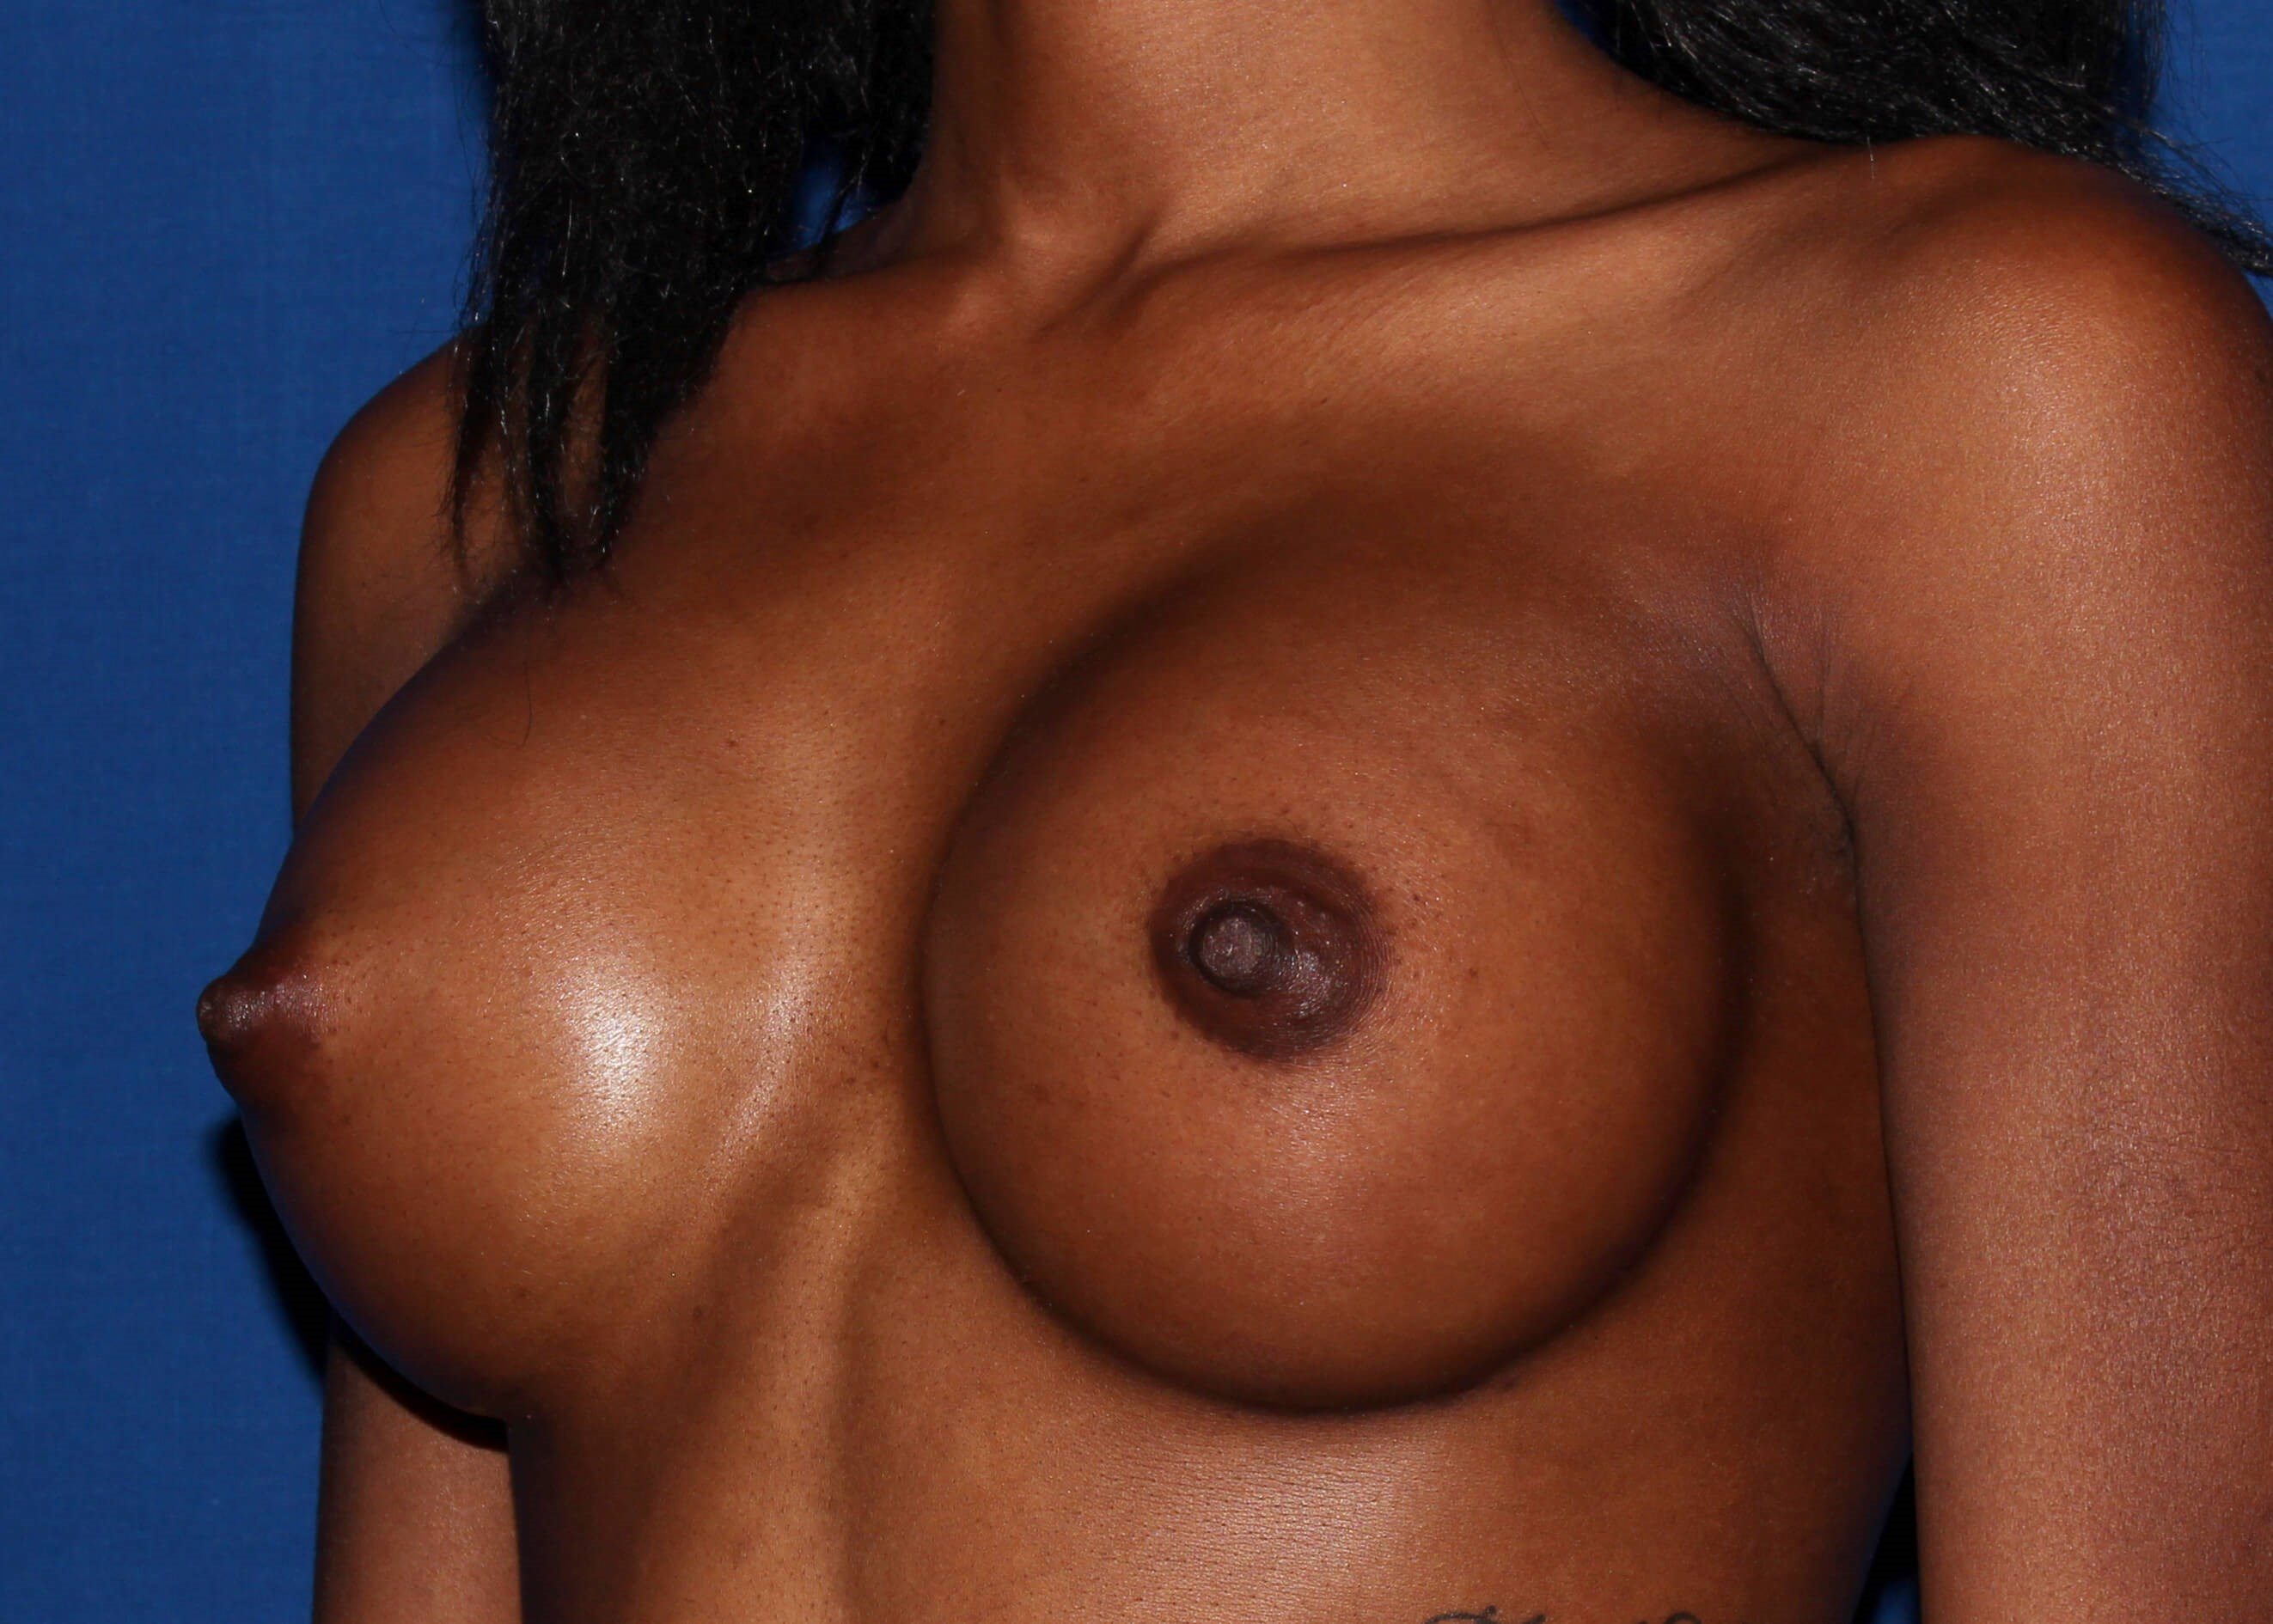 Breast Augmentation After Left Oblique View - Left Oblique View